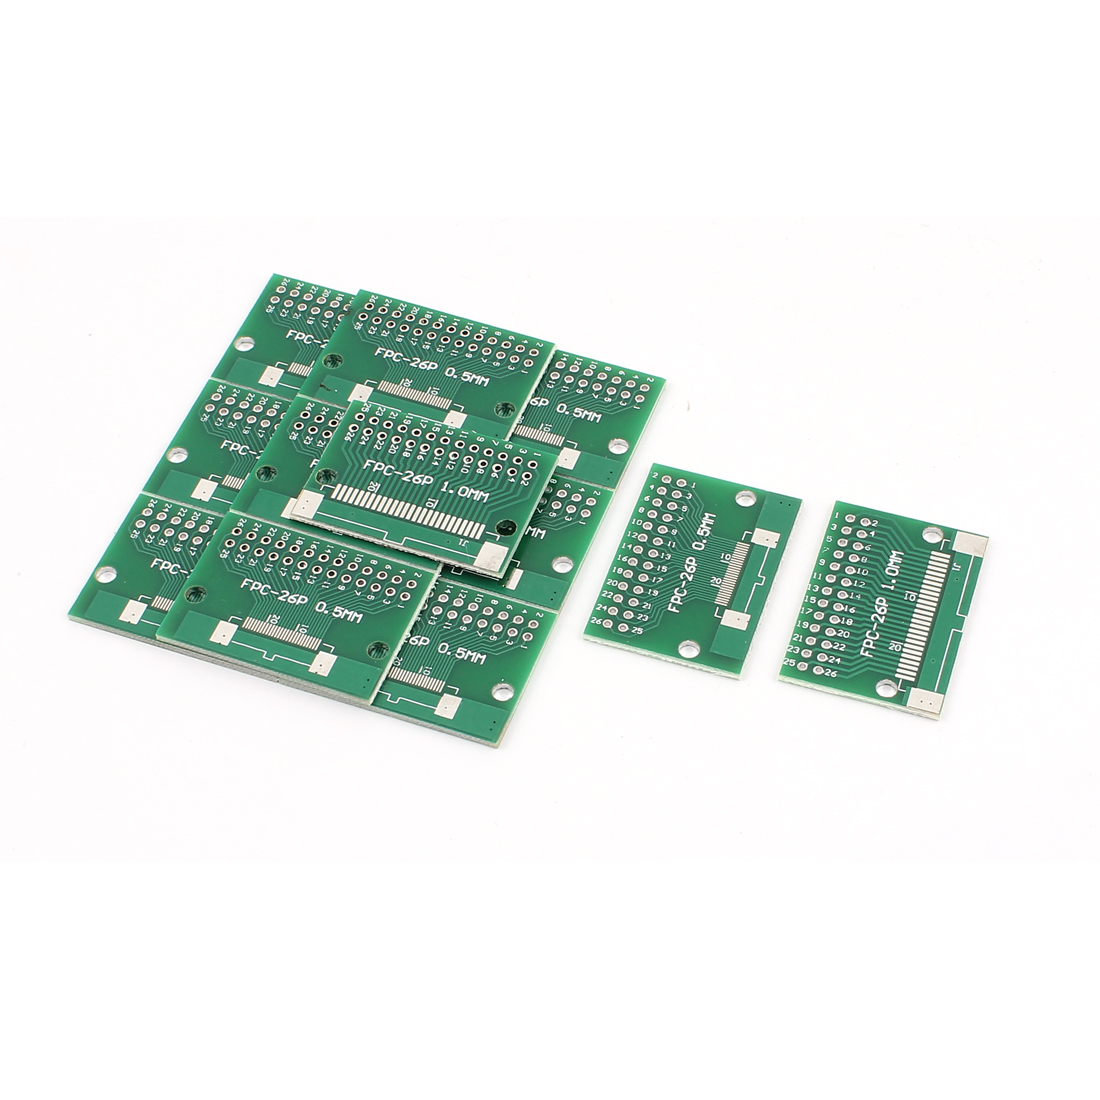 12Pcs 38 x 26mm 26Pins Adapter PCB Converter Board